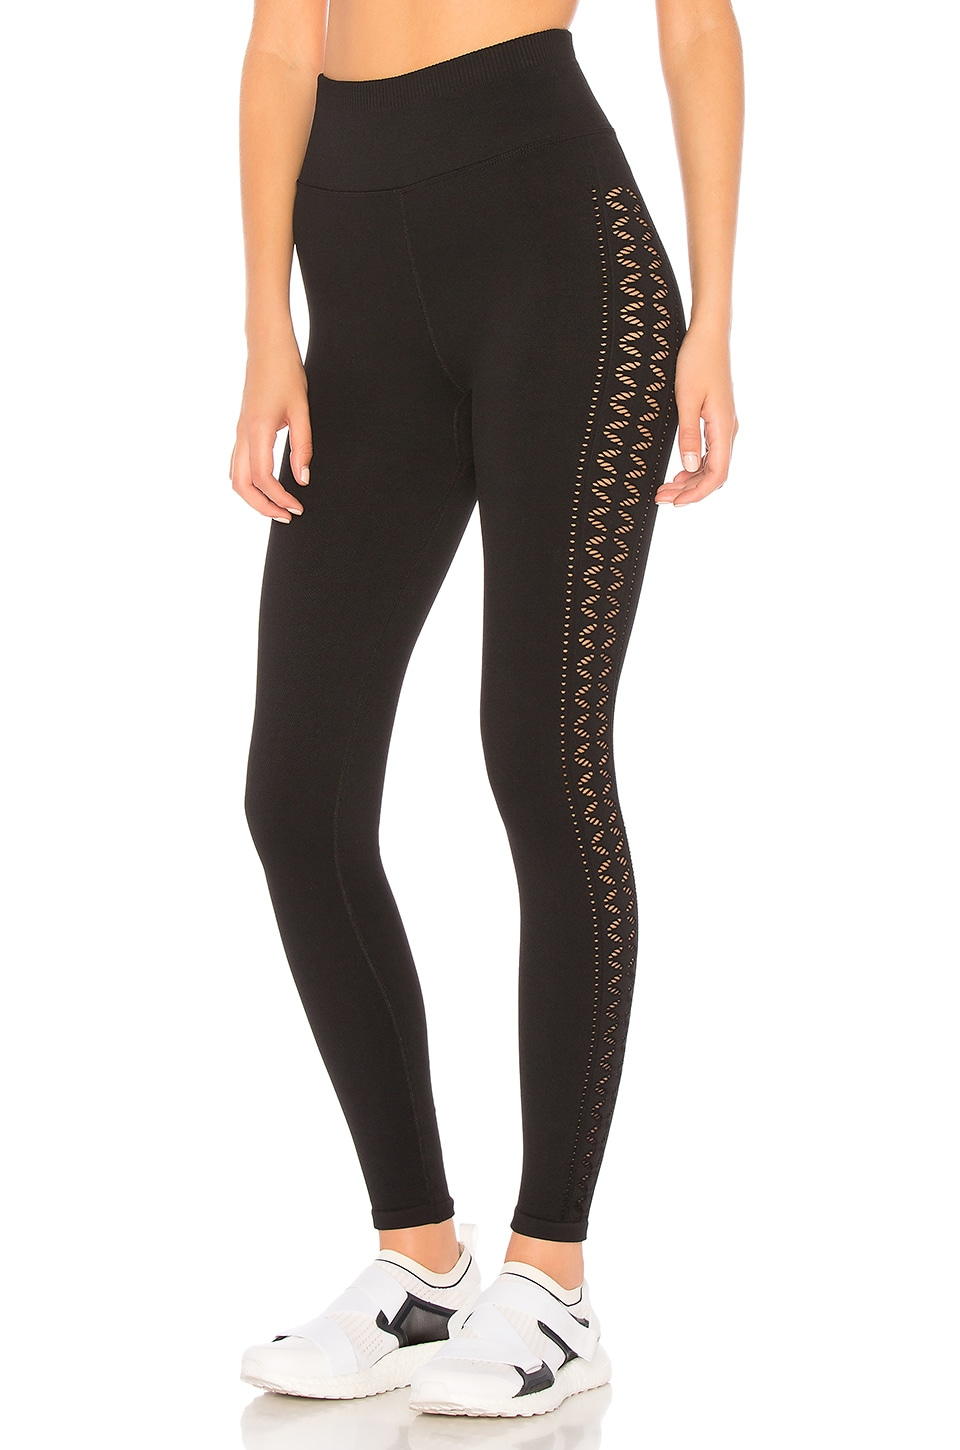 MOVEMENT ENLIGHTEN LEGGING